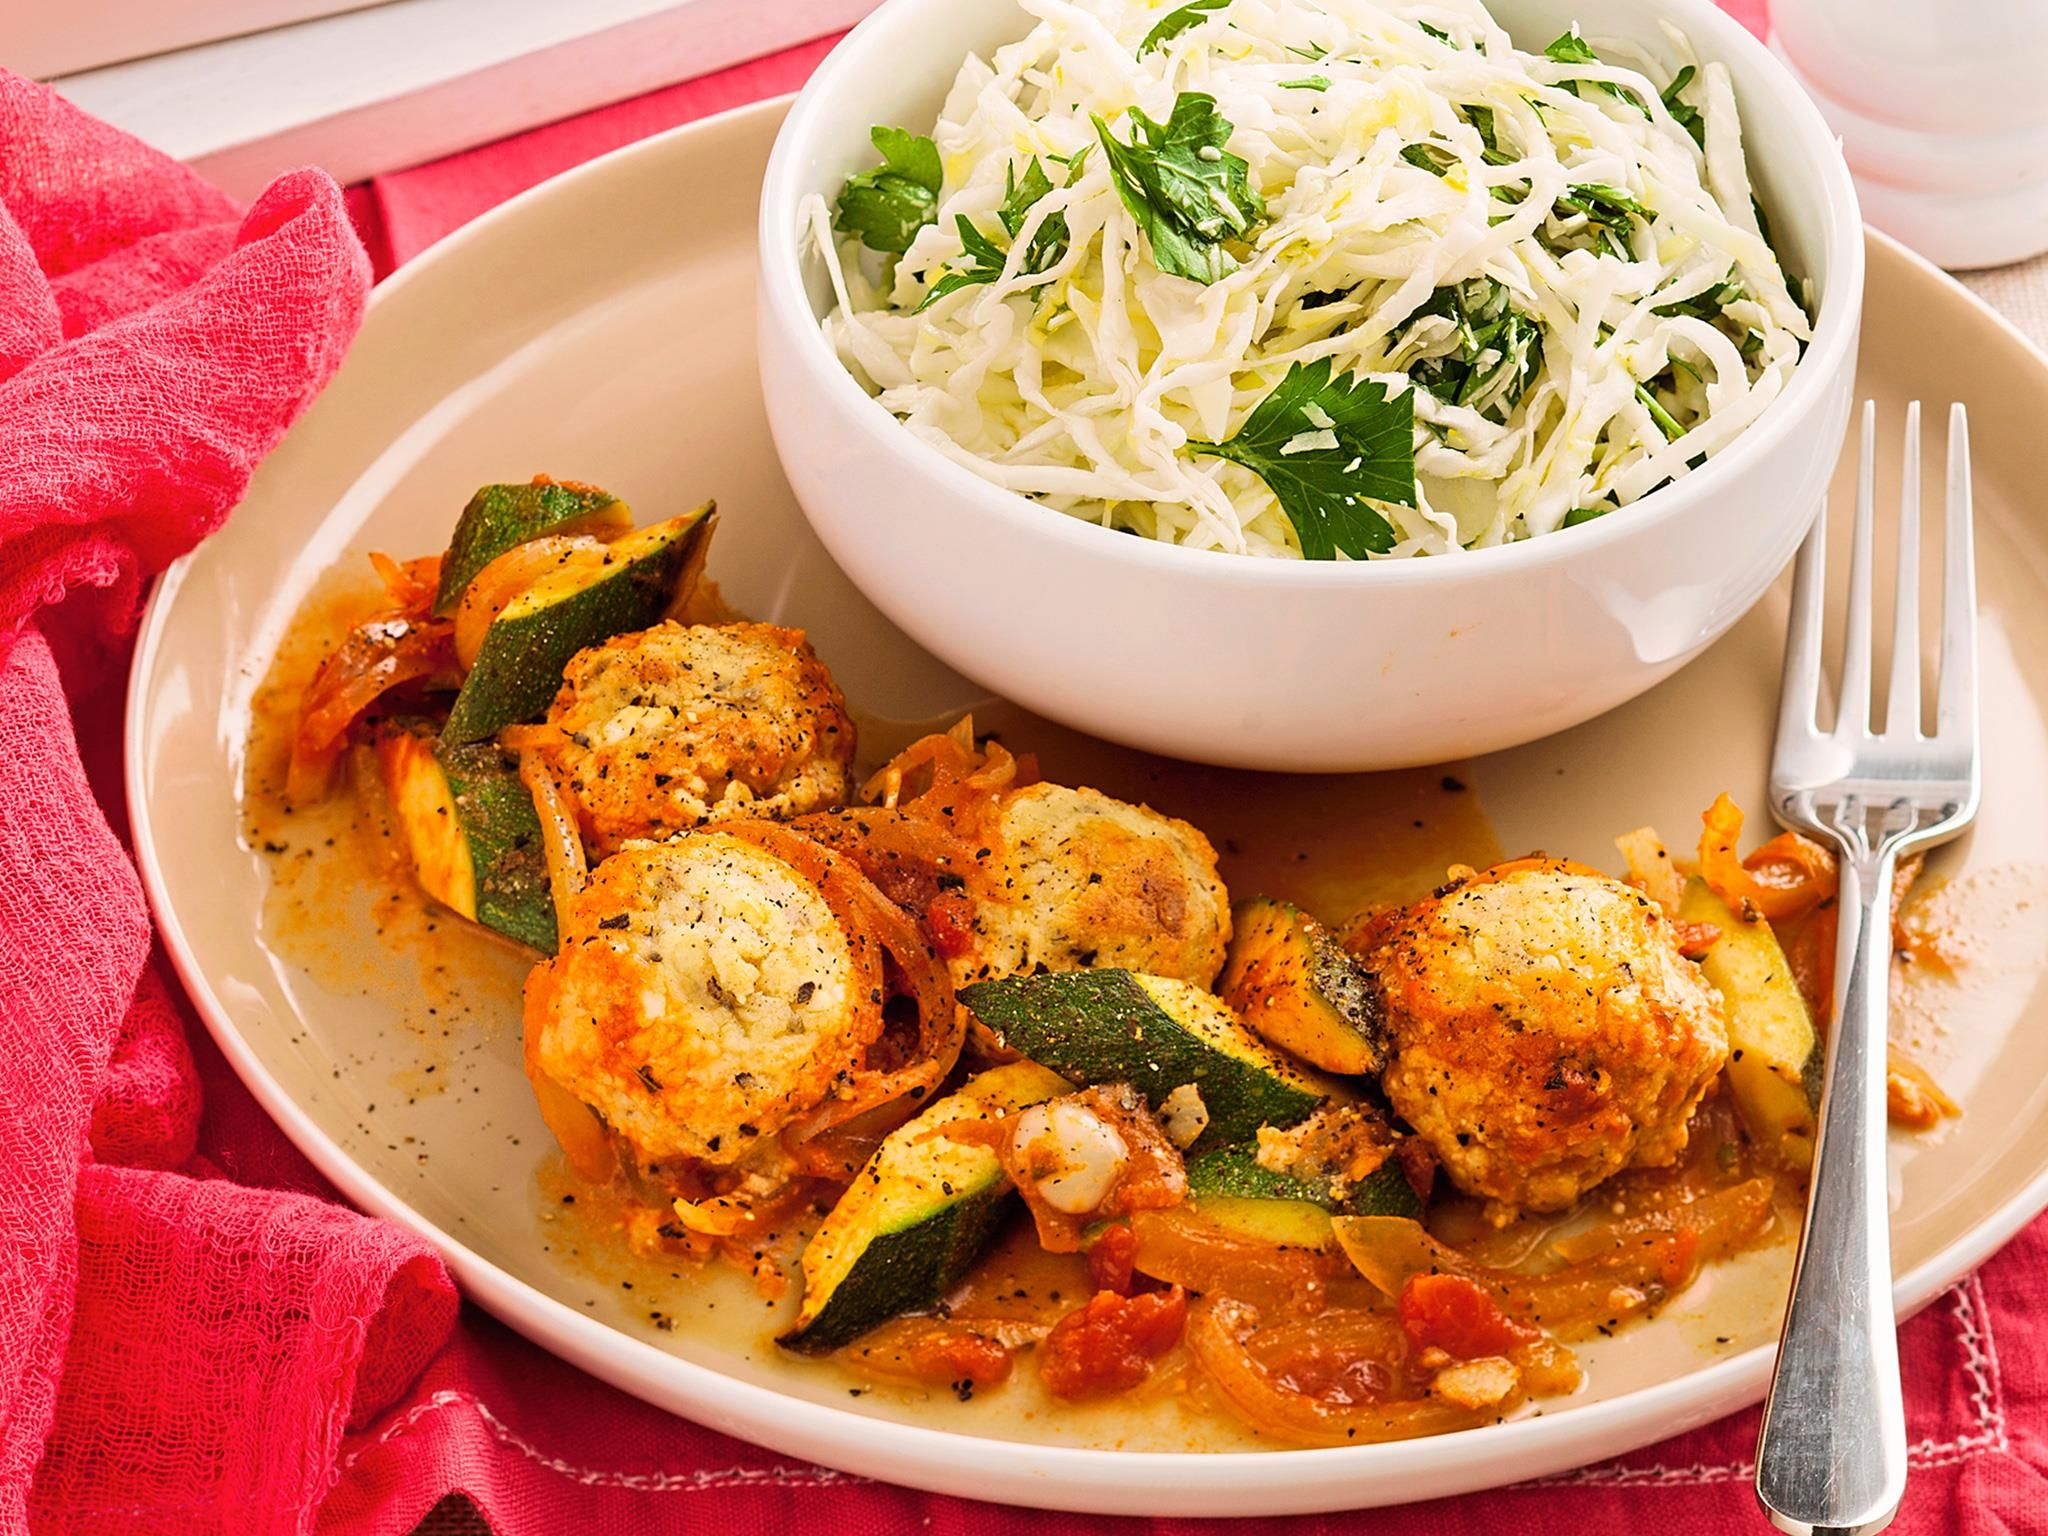 This is a wonderful vegetarian recipe with cheesy balls served on sautéed zucchini and a side of Italian coleslaw, a steal at just $4.15 per serve